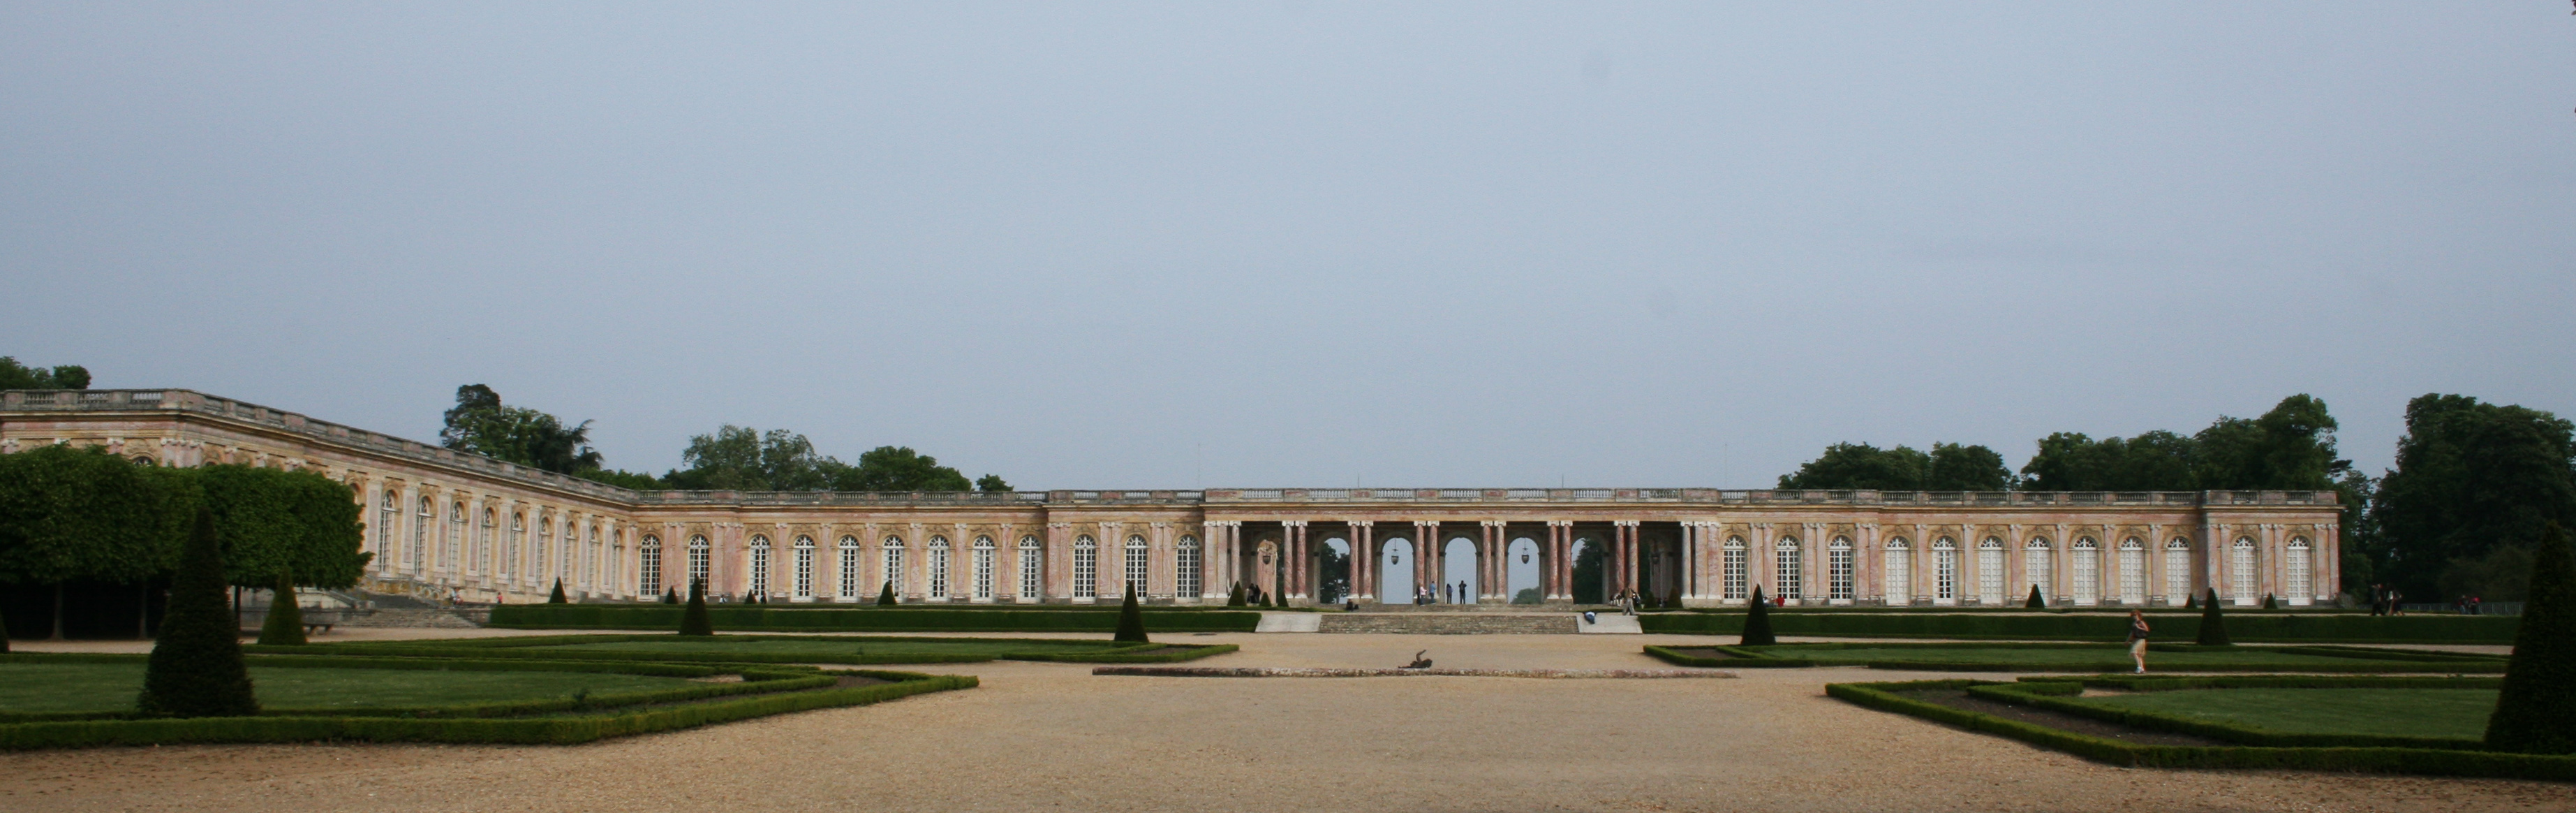 https://upload.wikimedia.org/wikipedia/commons/4/40/Versailles_Grand_Trianon_%281%29.jpg